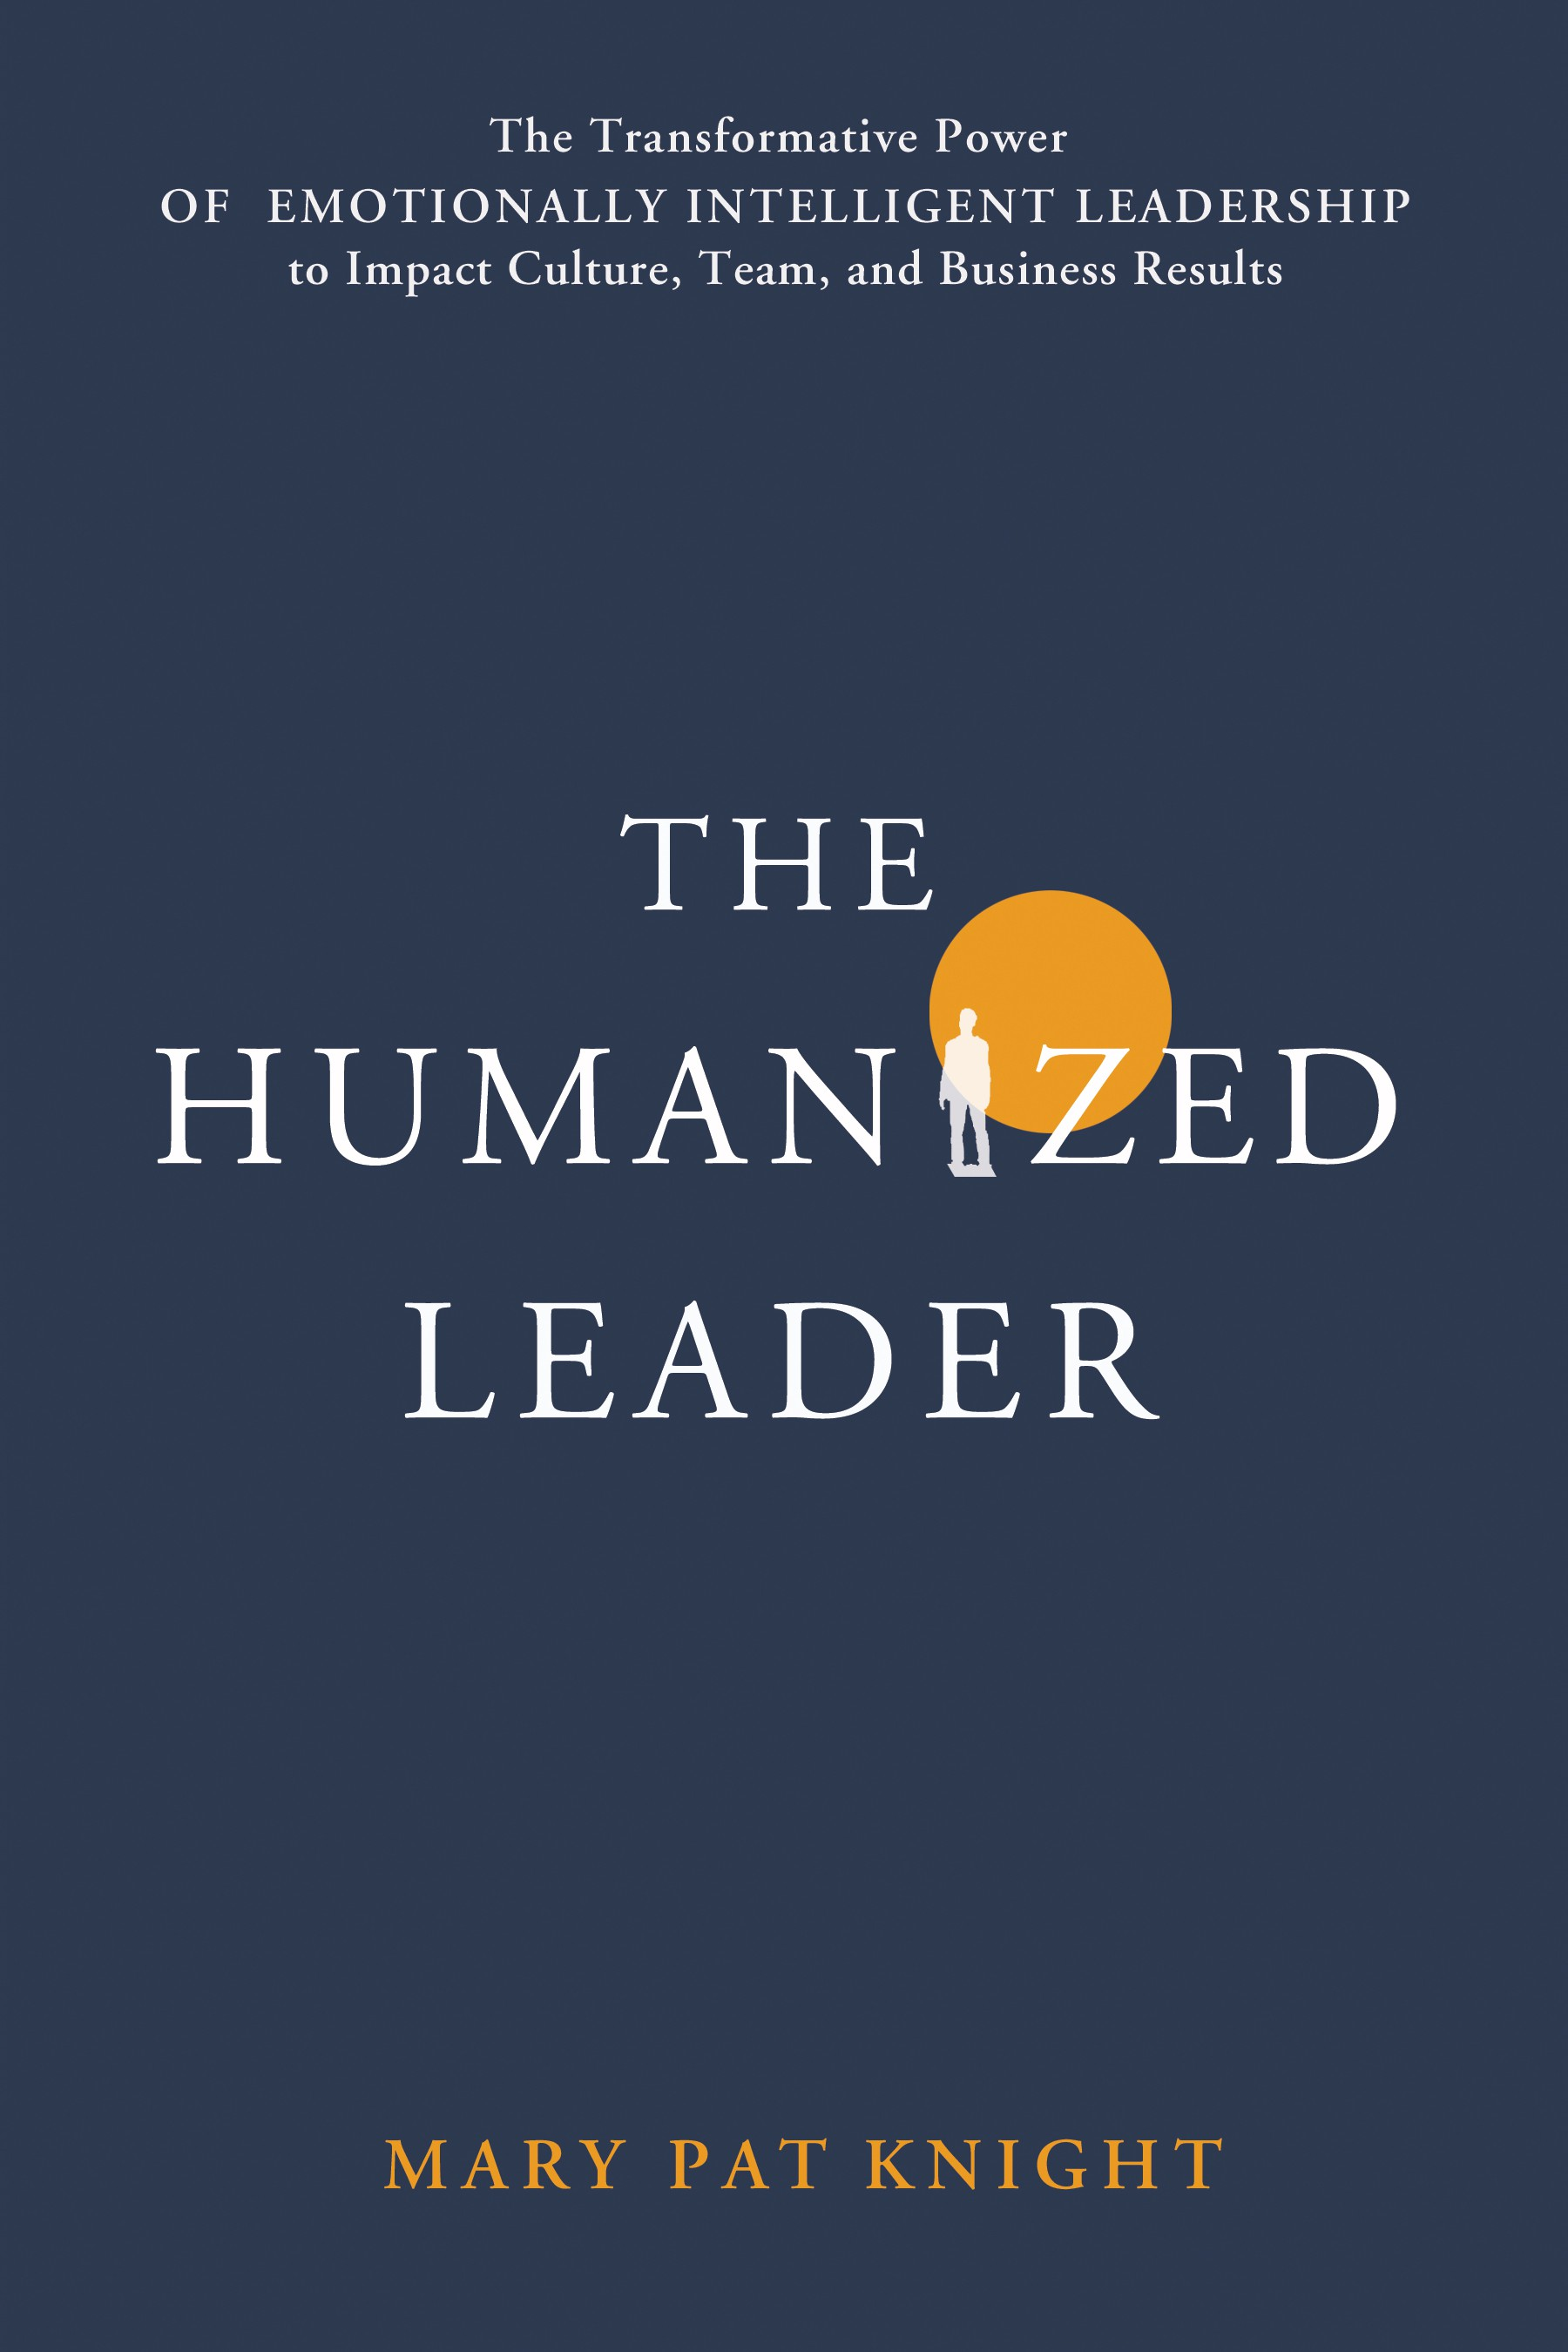 The PERFECT Leadership book for 2020:  The HUMANIZED LEADER